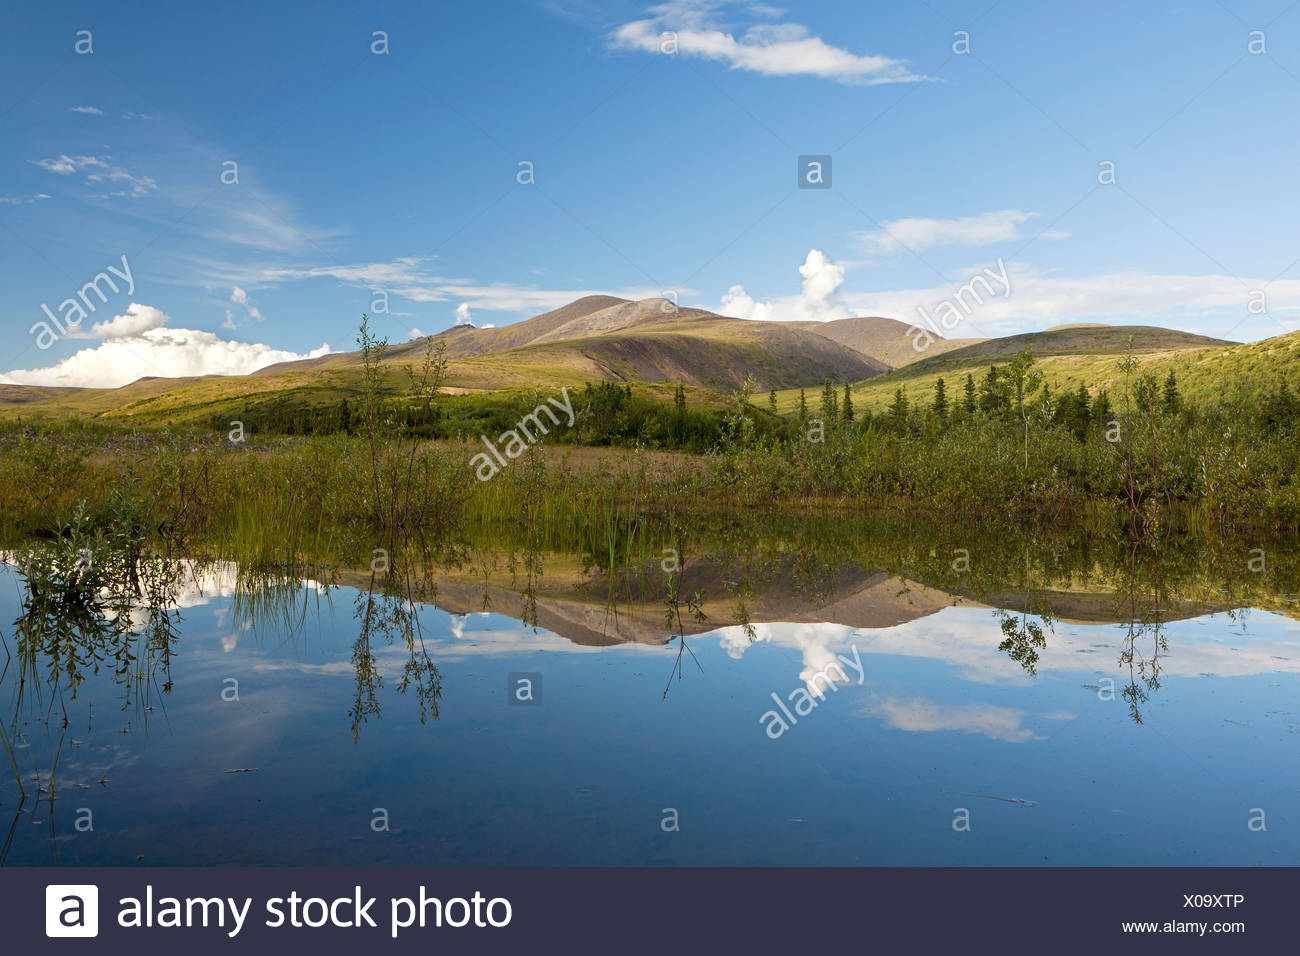 View from a quiet lake to Mount Fairplay in Alaska, USA, North America - Stock Image